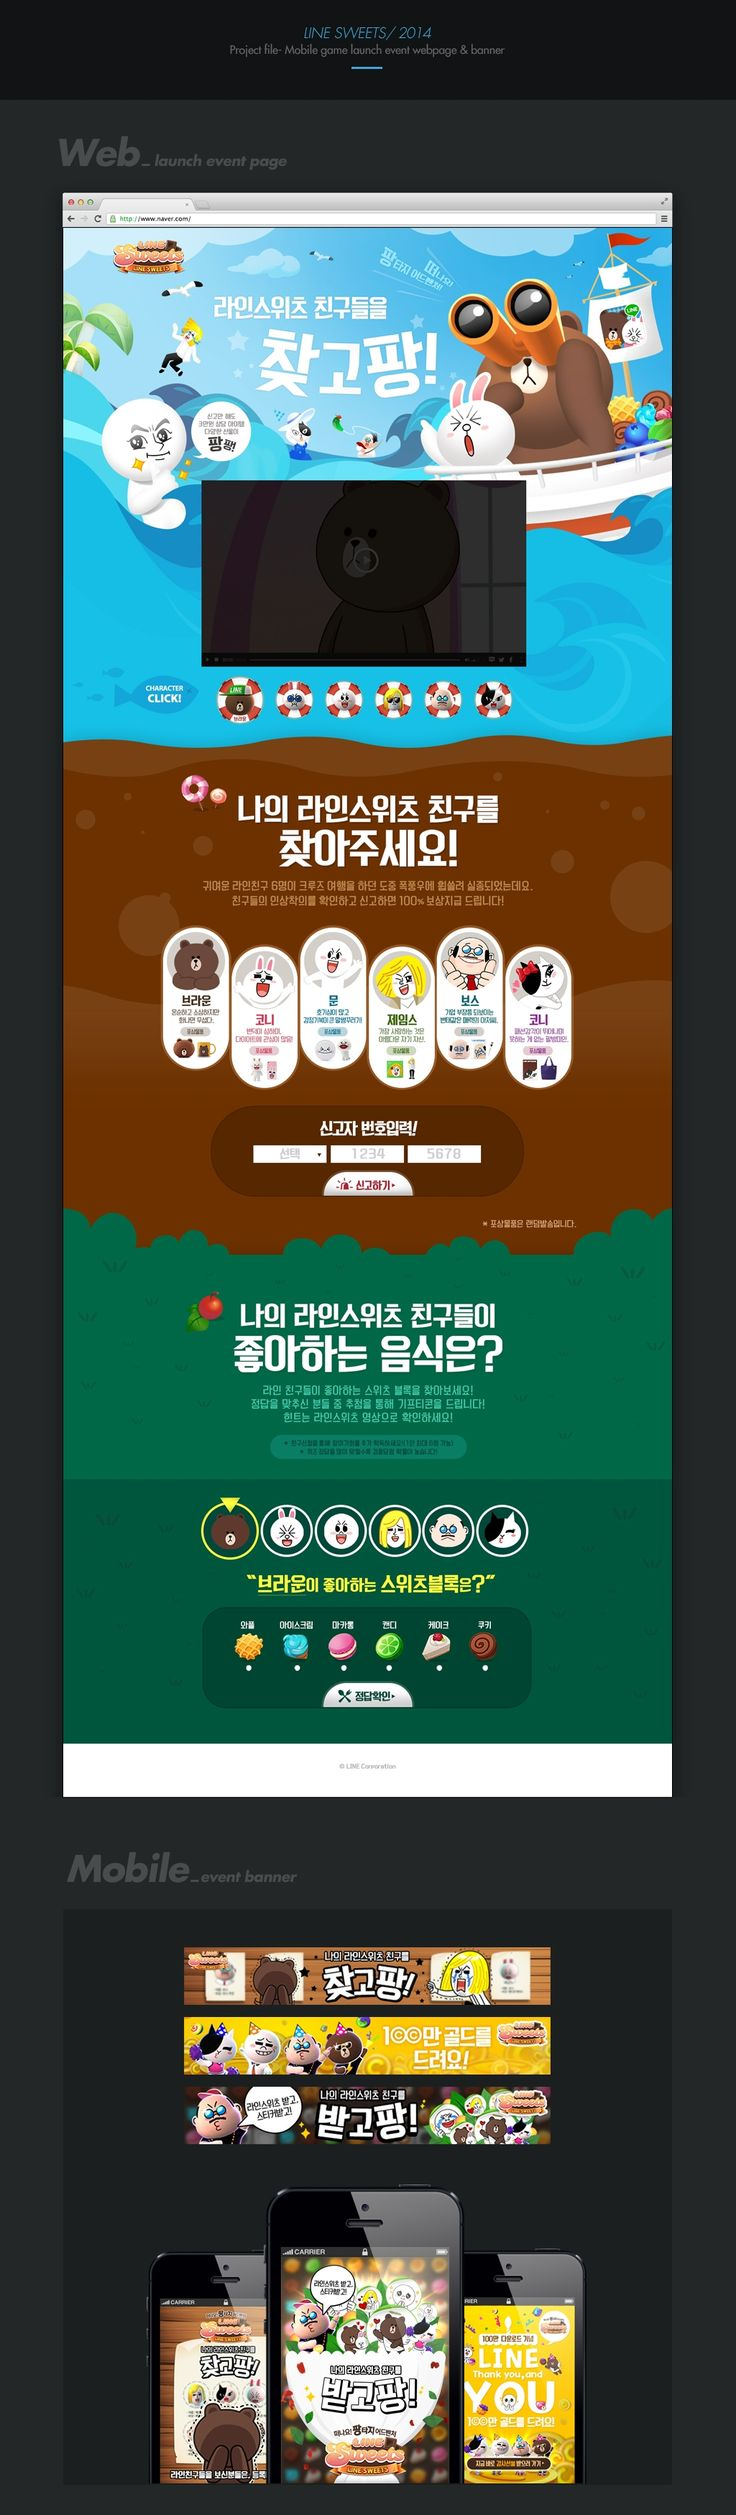 Line Sweets/2014 Project file_Mobile game launch event  web page & banner